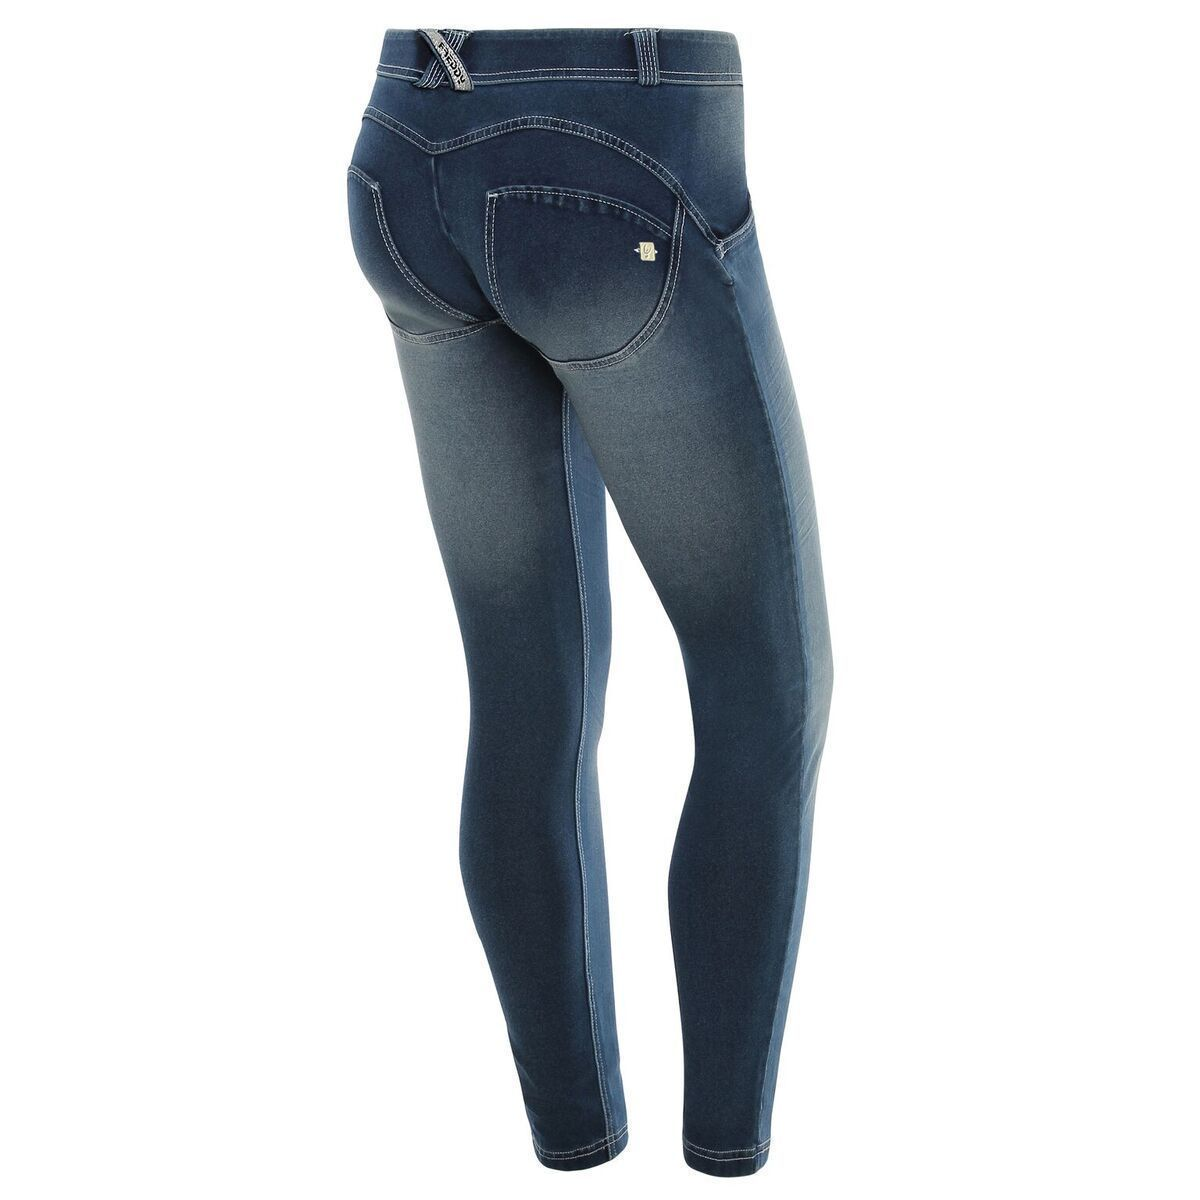 WR.UP® Shaping Jeans Skinny Mid Dark Blue + Crinkle Effect + white stitching